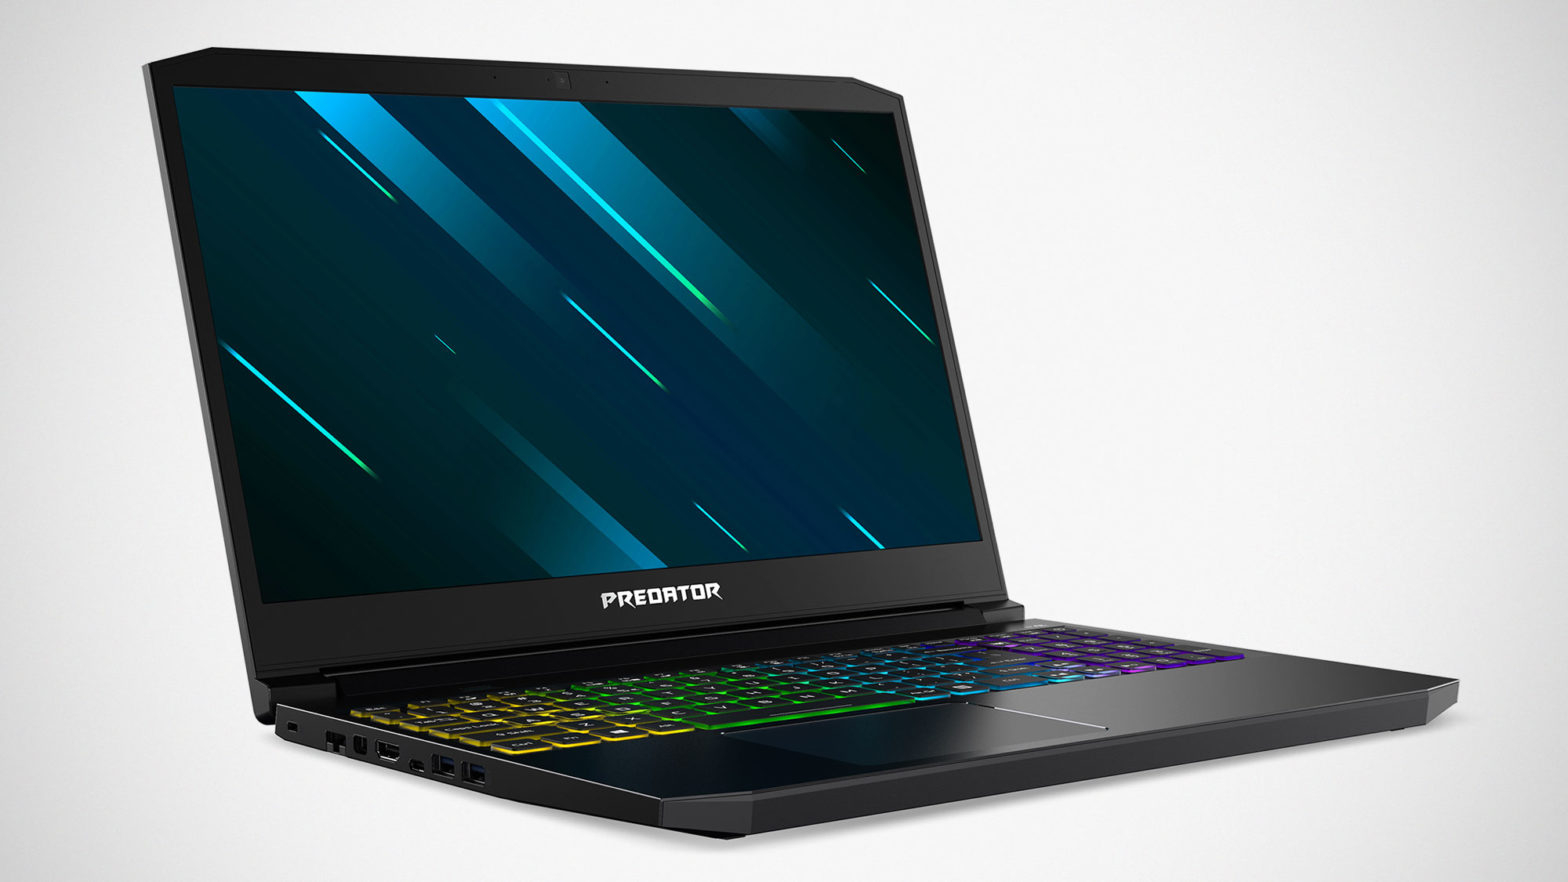 Acer Predator Triton 300 Gaming Laptop